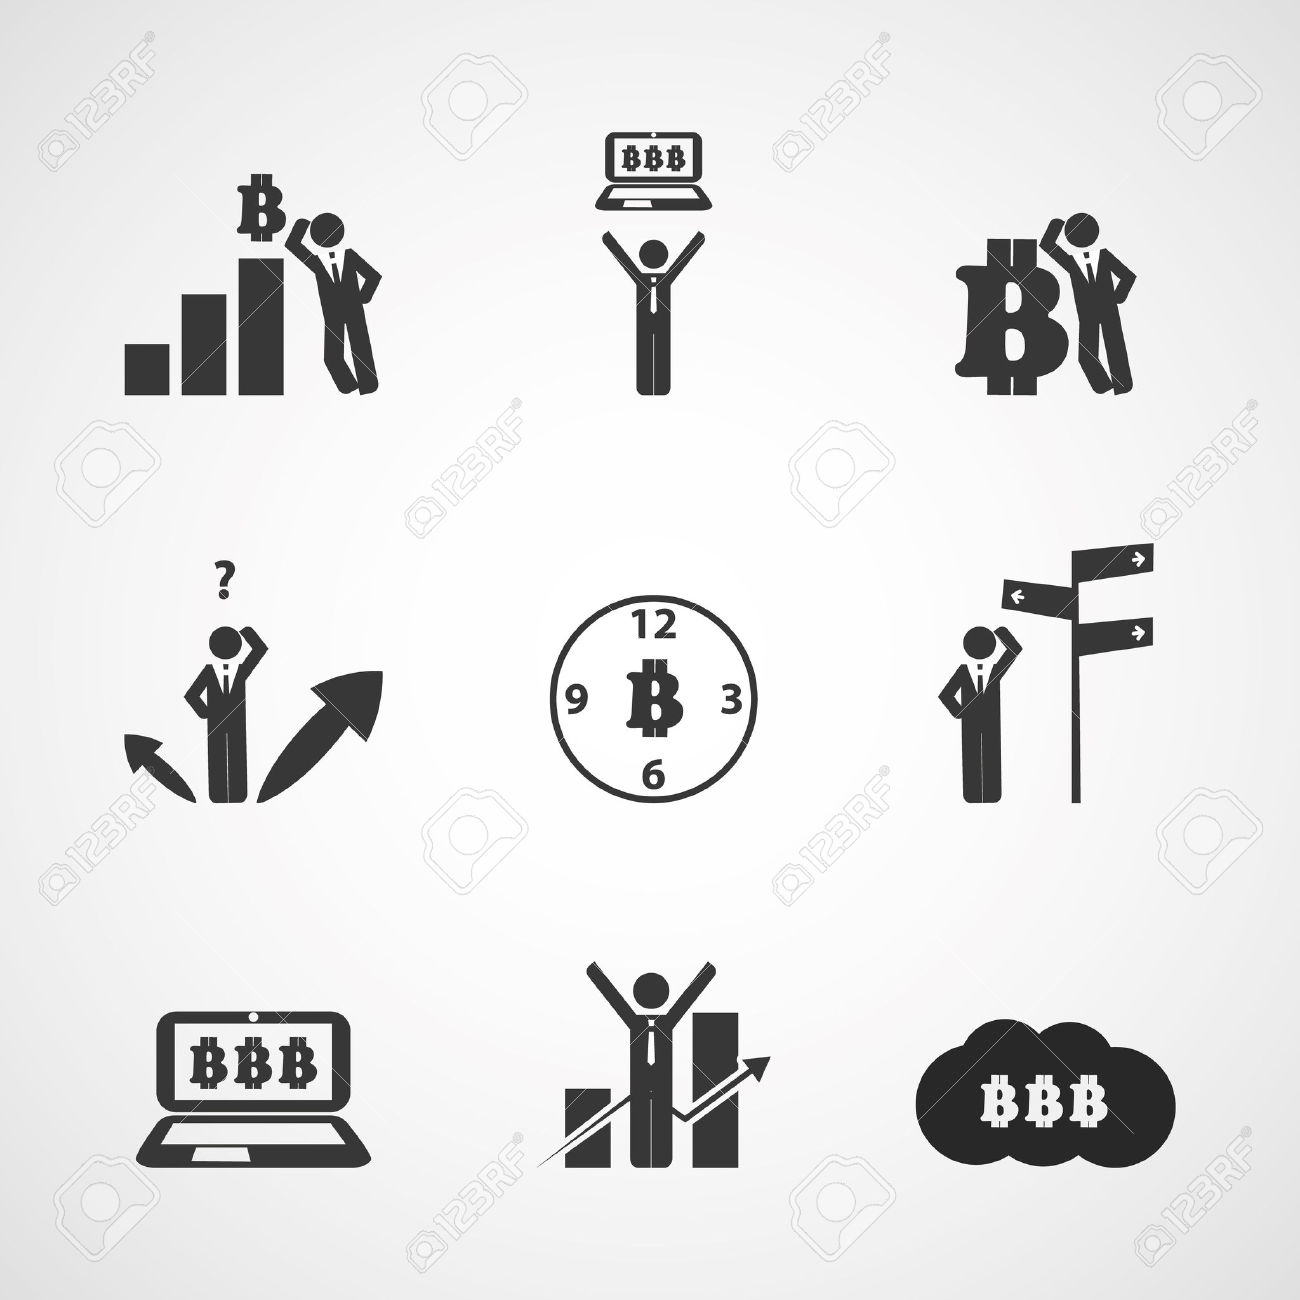 Set Of Bitcoin Illustration Designs Clipart Royalty Free Cliparts.